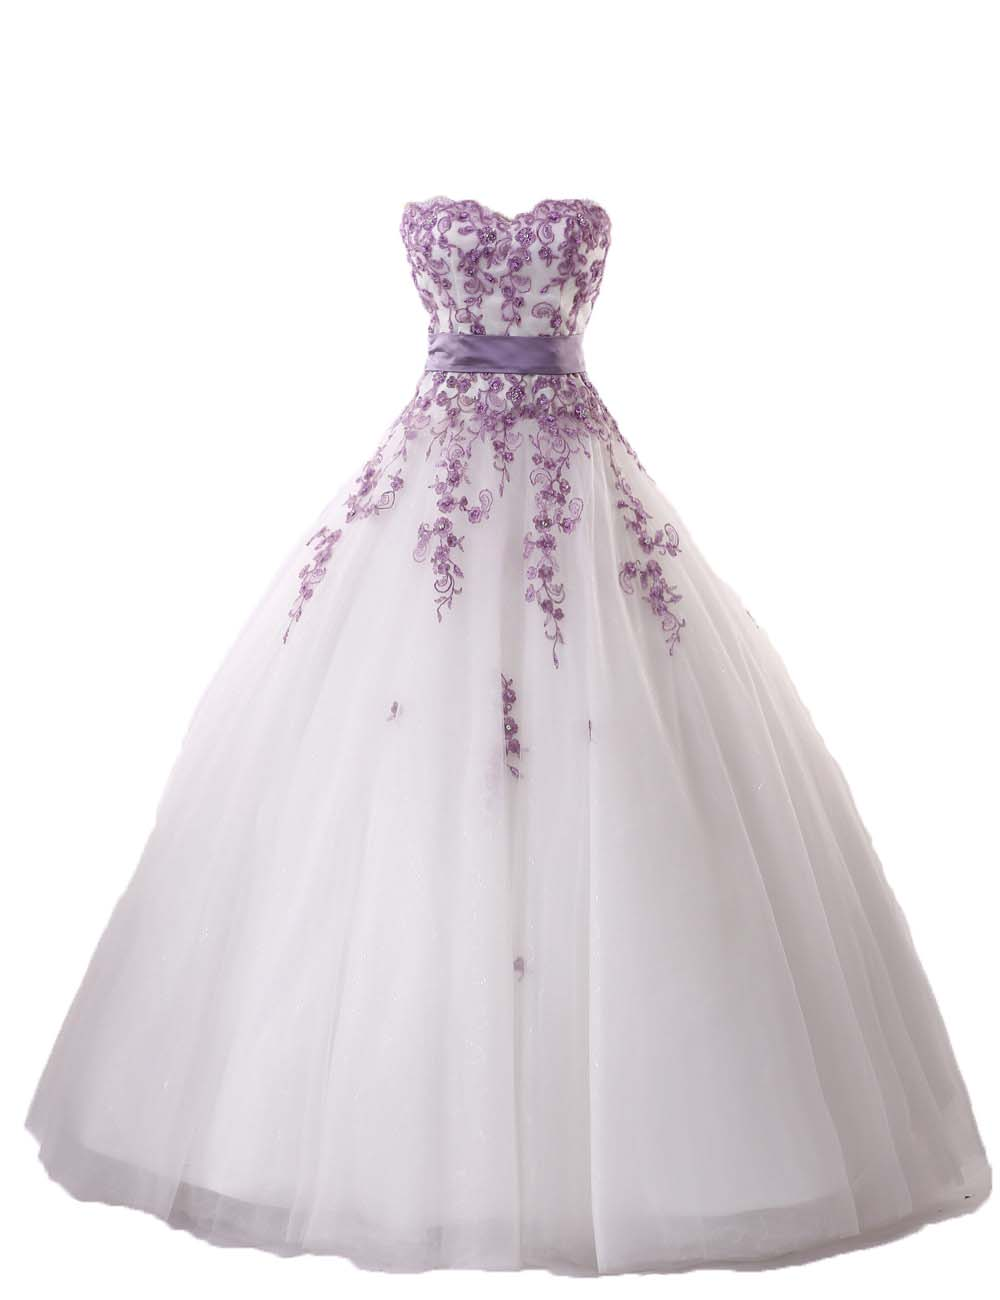 Buy Online Wedding Dresses In Usa - Cheap Wedding Dresses